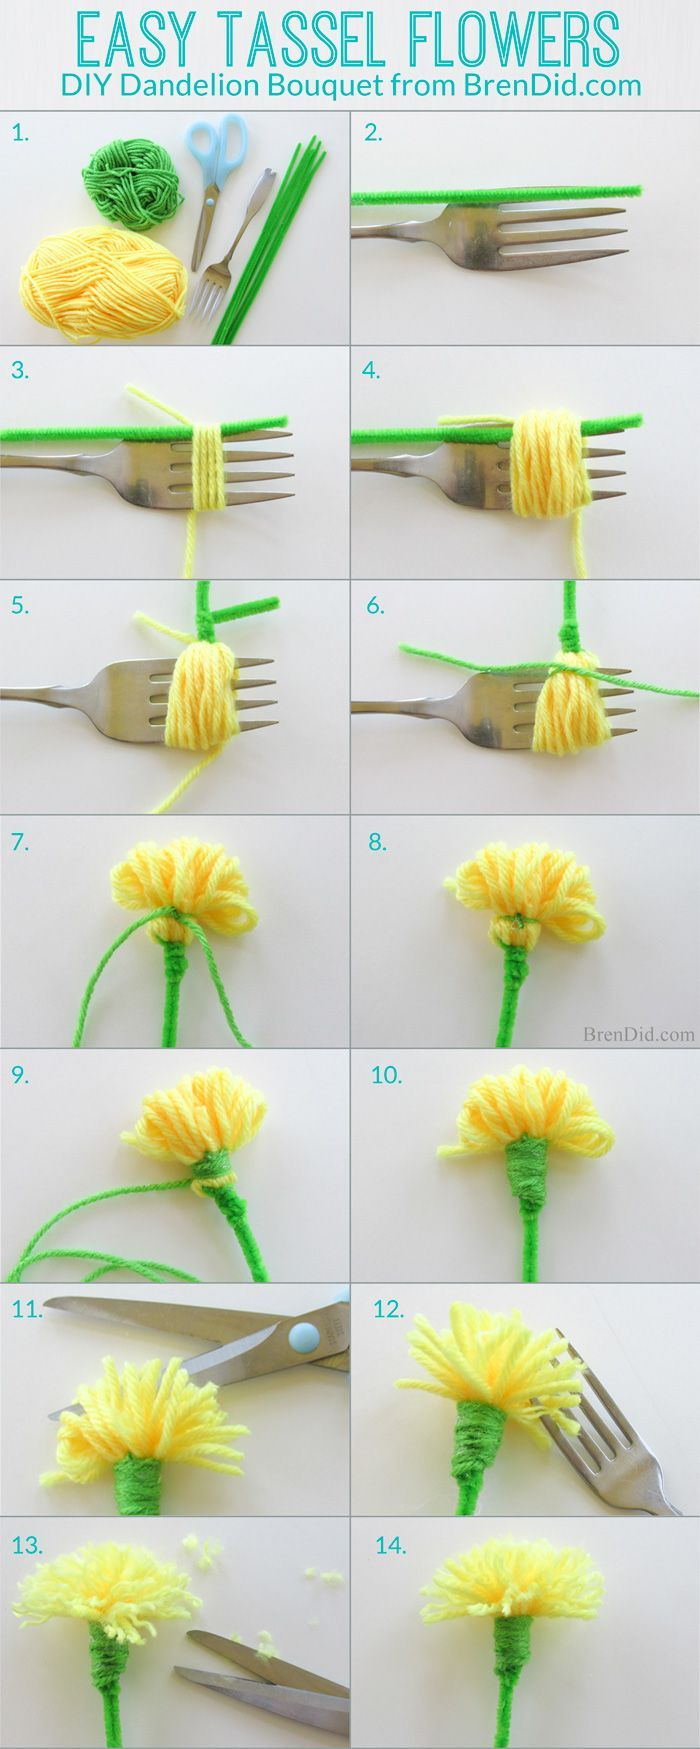 How to make tassel flowers - Make an easy DIY dandelion bouquet with yarn and pipe cleaners to delight someone you love. Perfect for weddings, parties and Mother's Day.